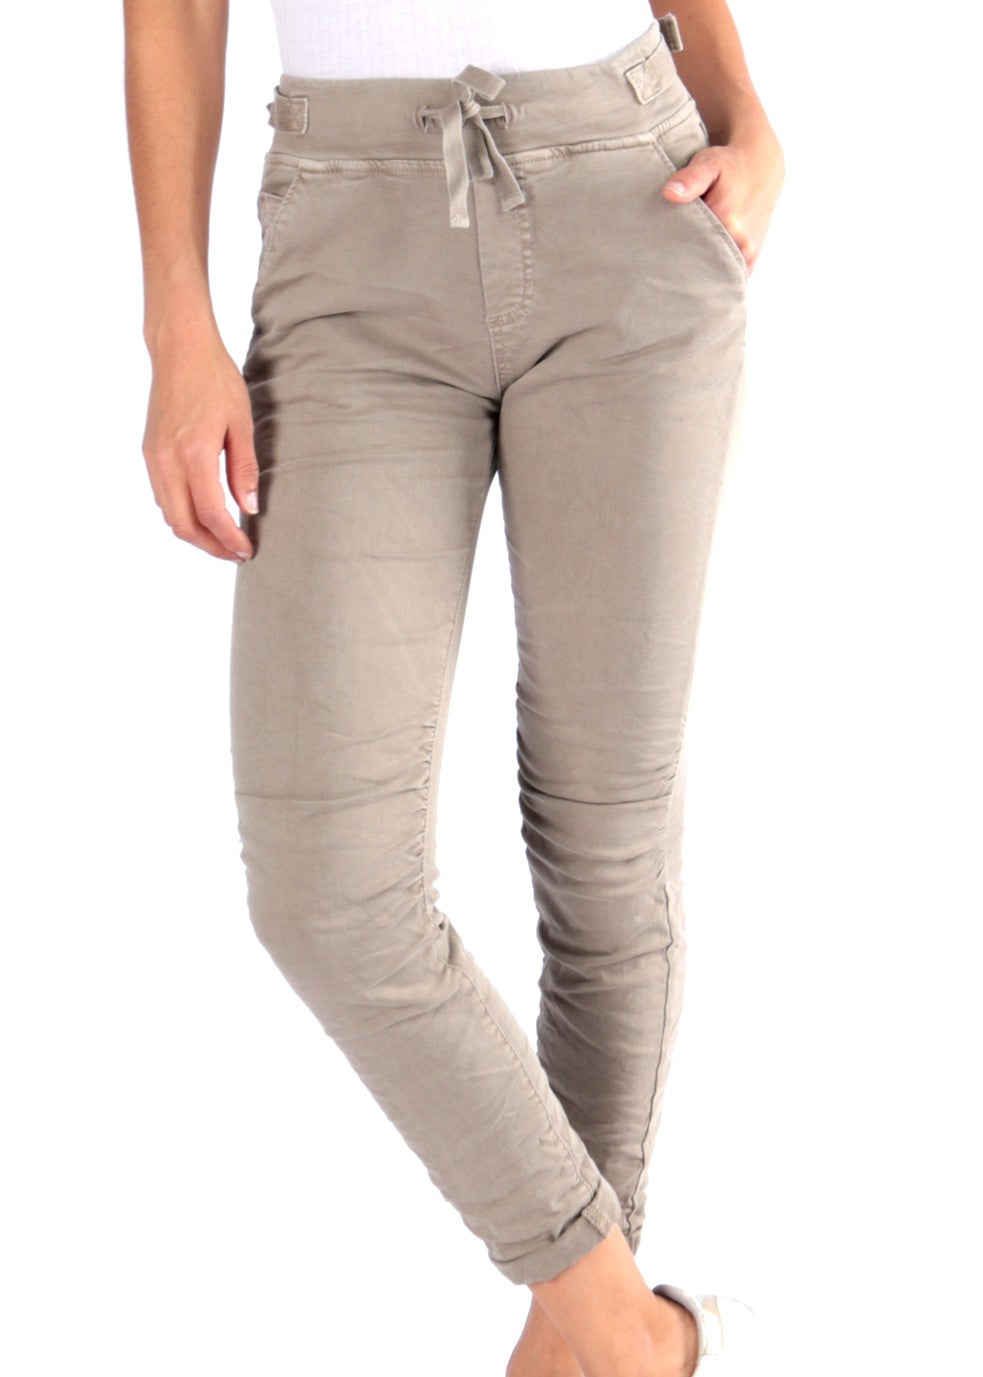 SOFIA - Pull-on Jeans - Dusty Road